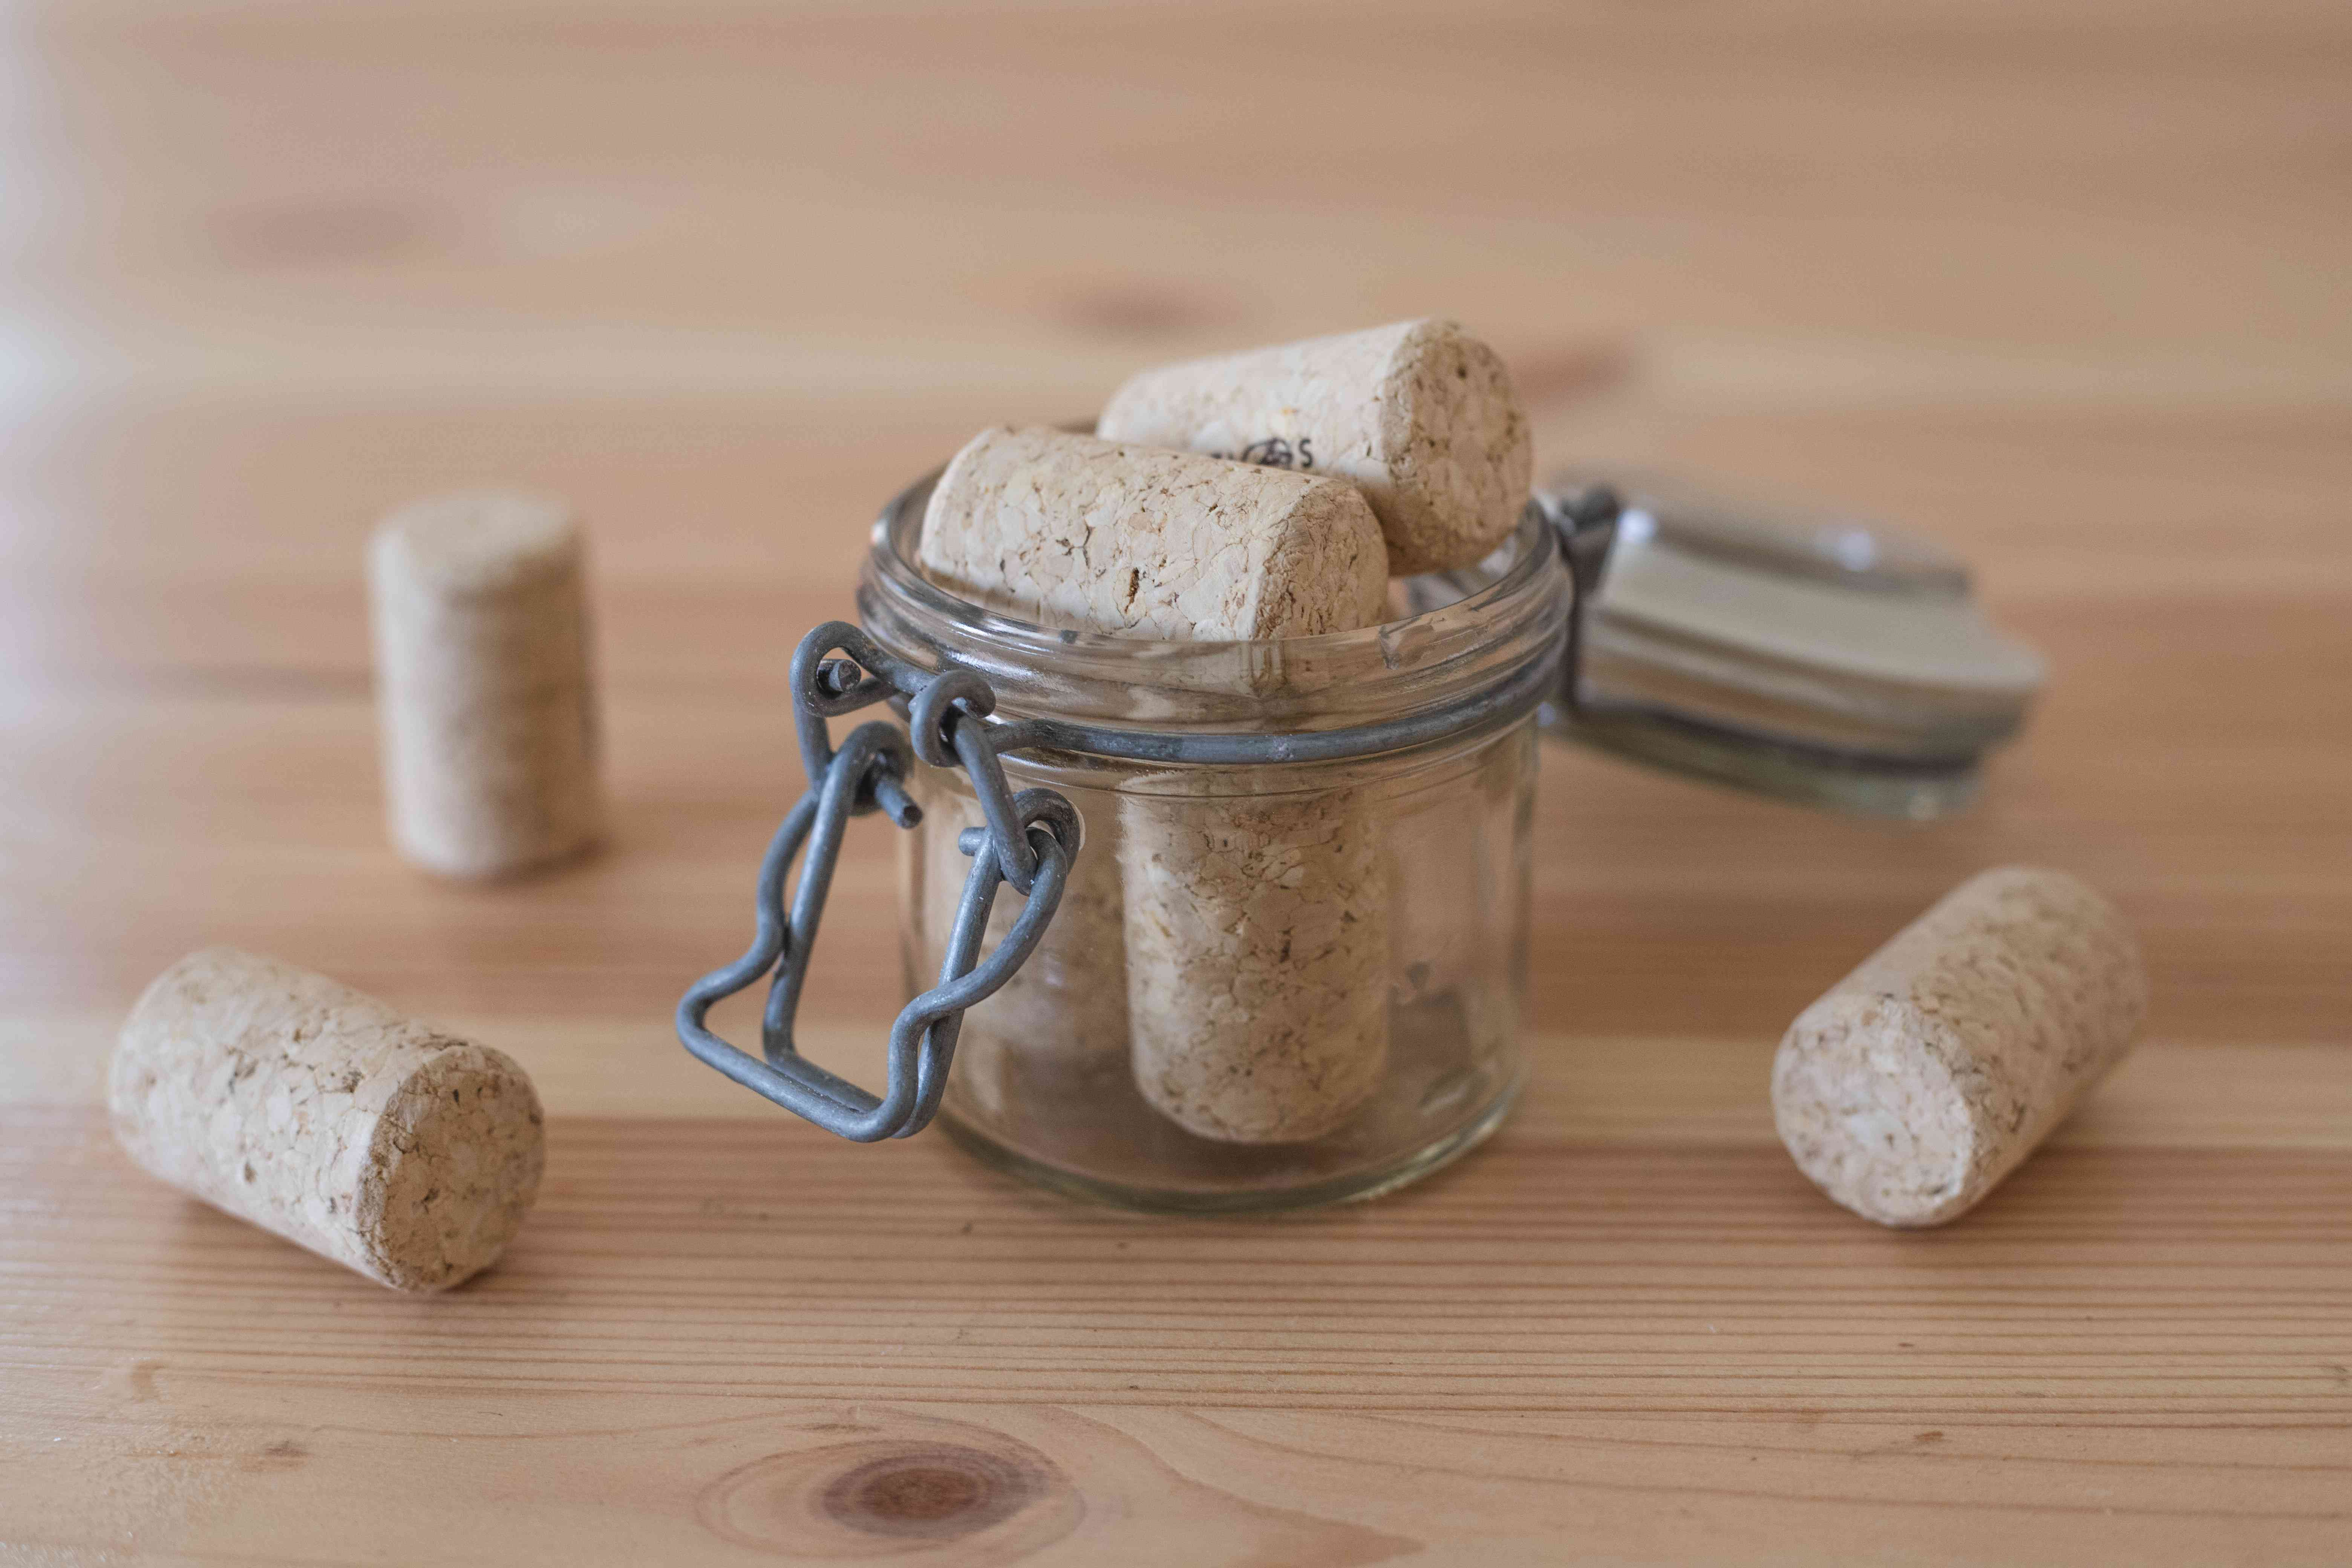 various wine corks scattered on wooden table and in glass jar